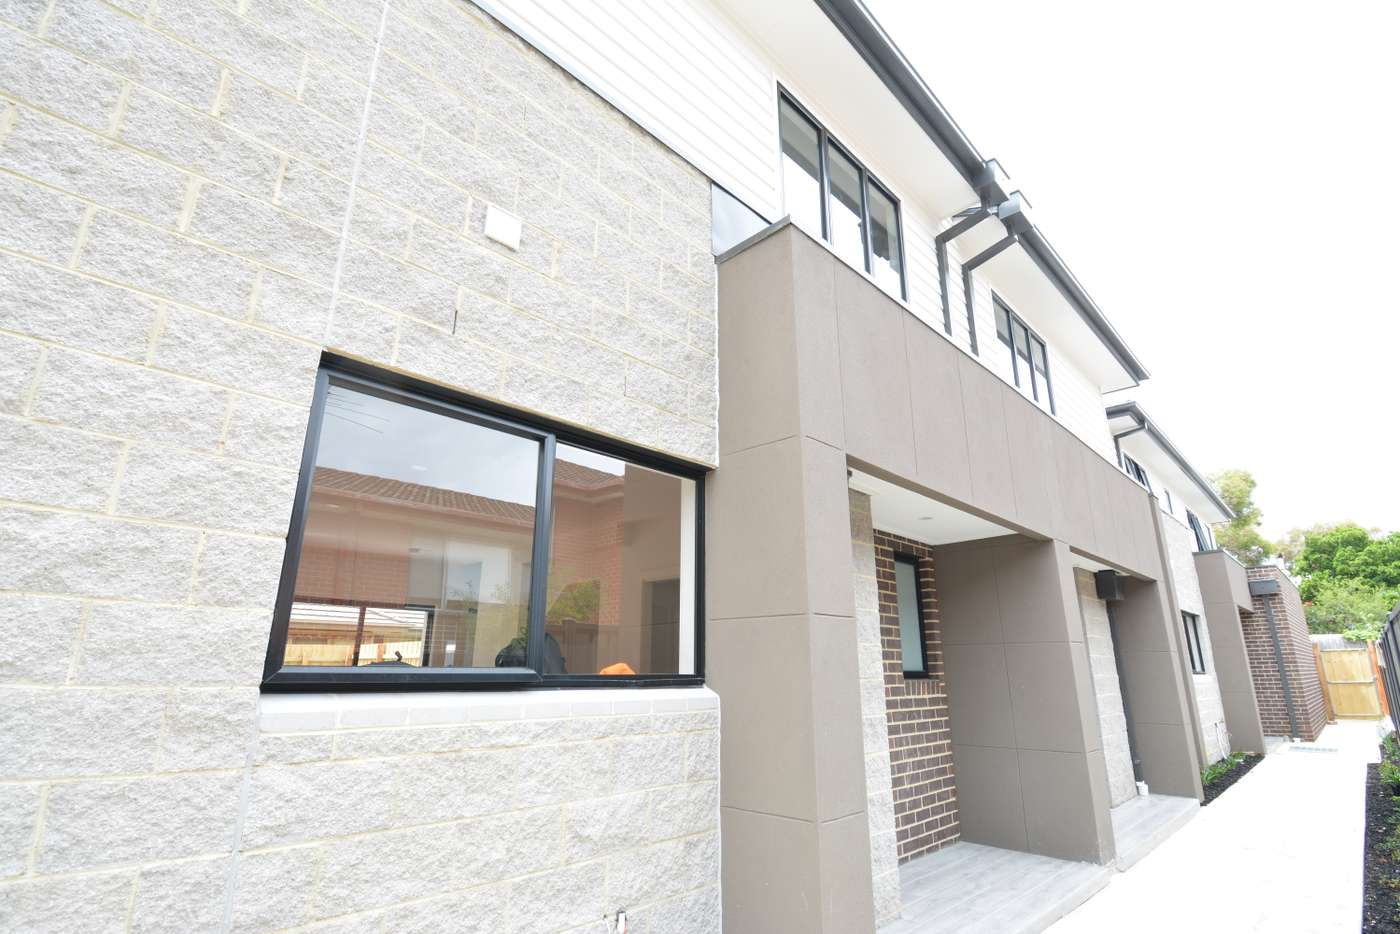 Main view of Homely townhouse listing, 4/59 Normanby Avenue, Thornbury VIC 3071